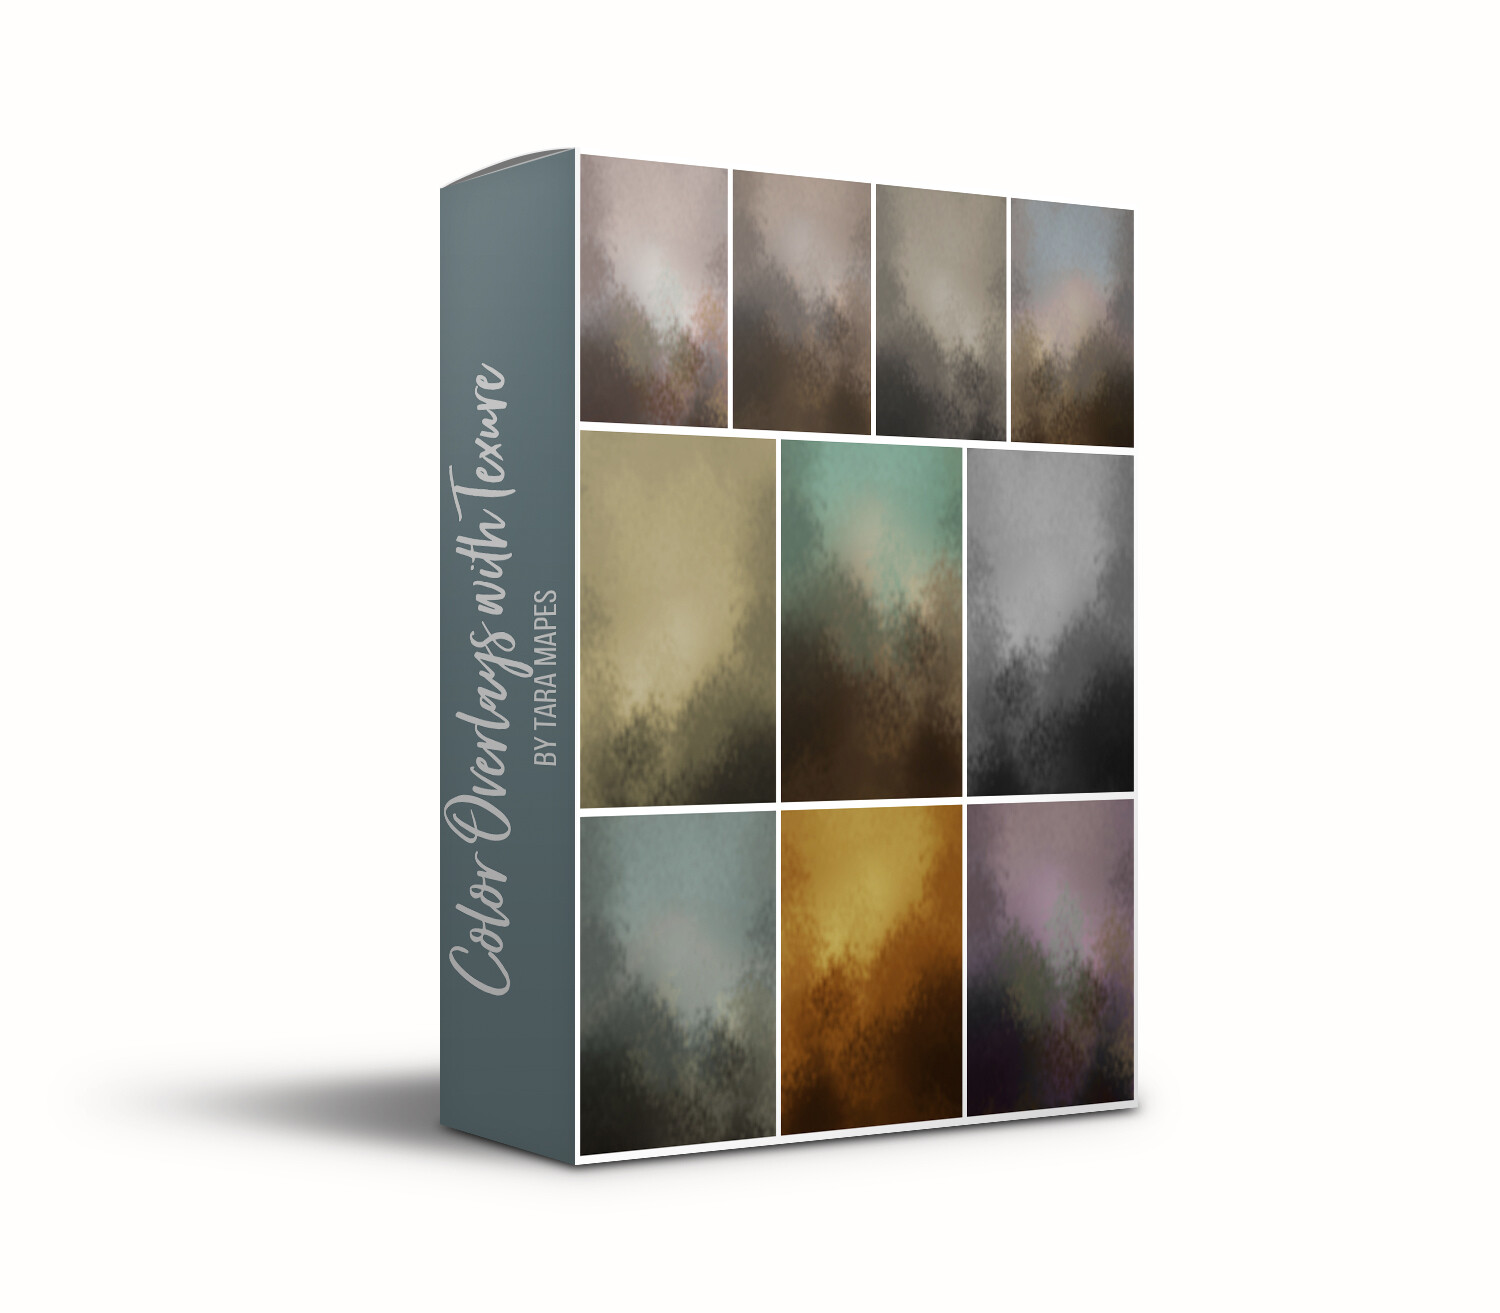 Blurred Color Fine Art Texture Overlays - 10 Digitally Painted Color Textures -  Photoshop Overlays by Tara Mapes